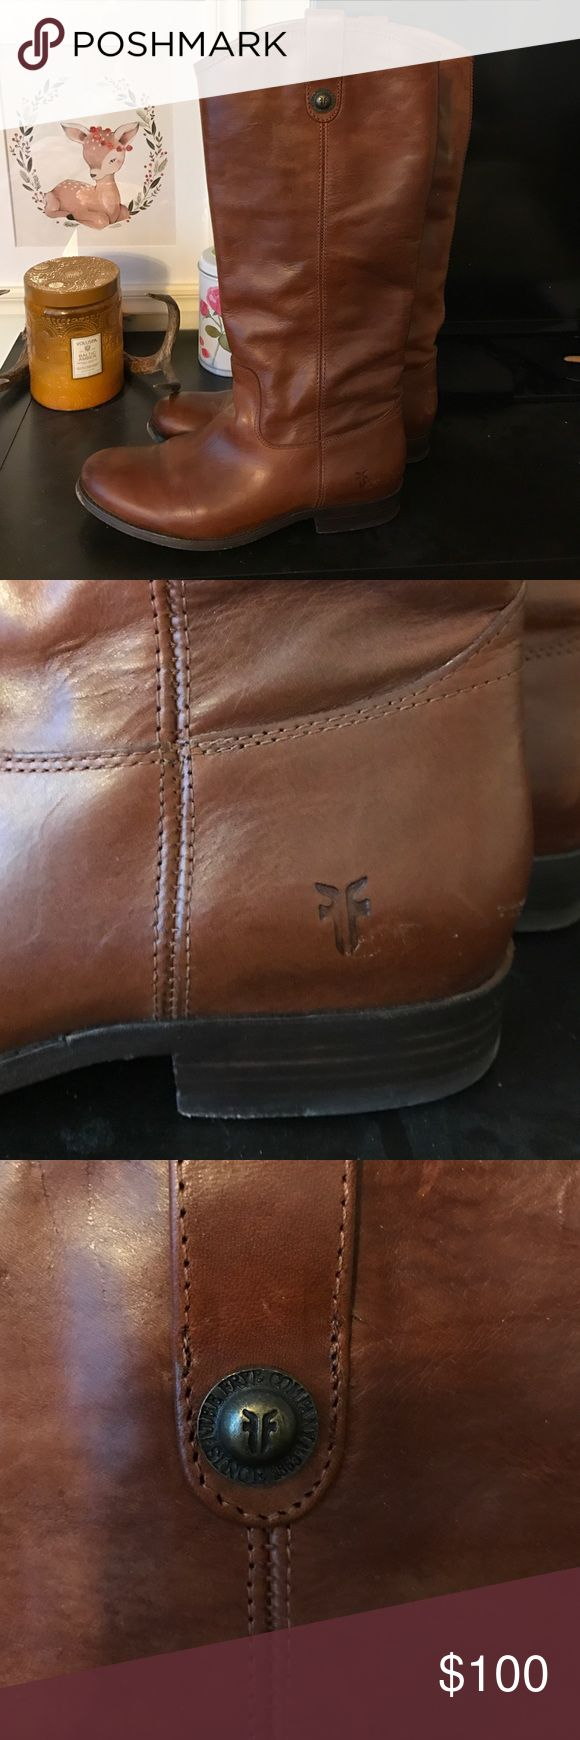 FRYE Melissa boot Authentic brown FRYE Melissa boots. Worn. No damage to leather, no scratches, treated and conditioned leather. Frye Shoes Heeled Boots